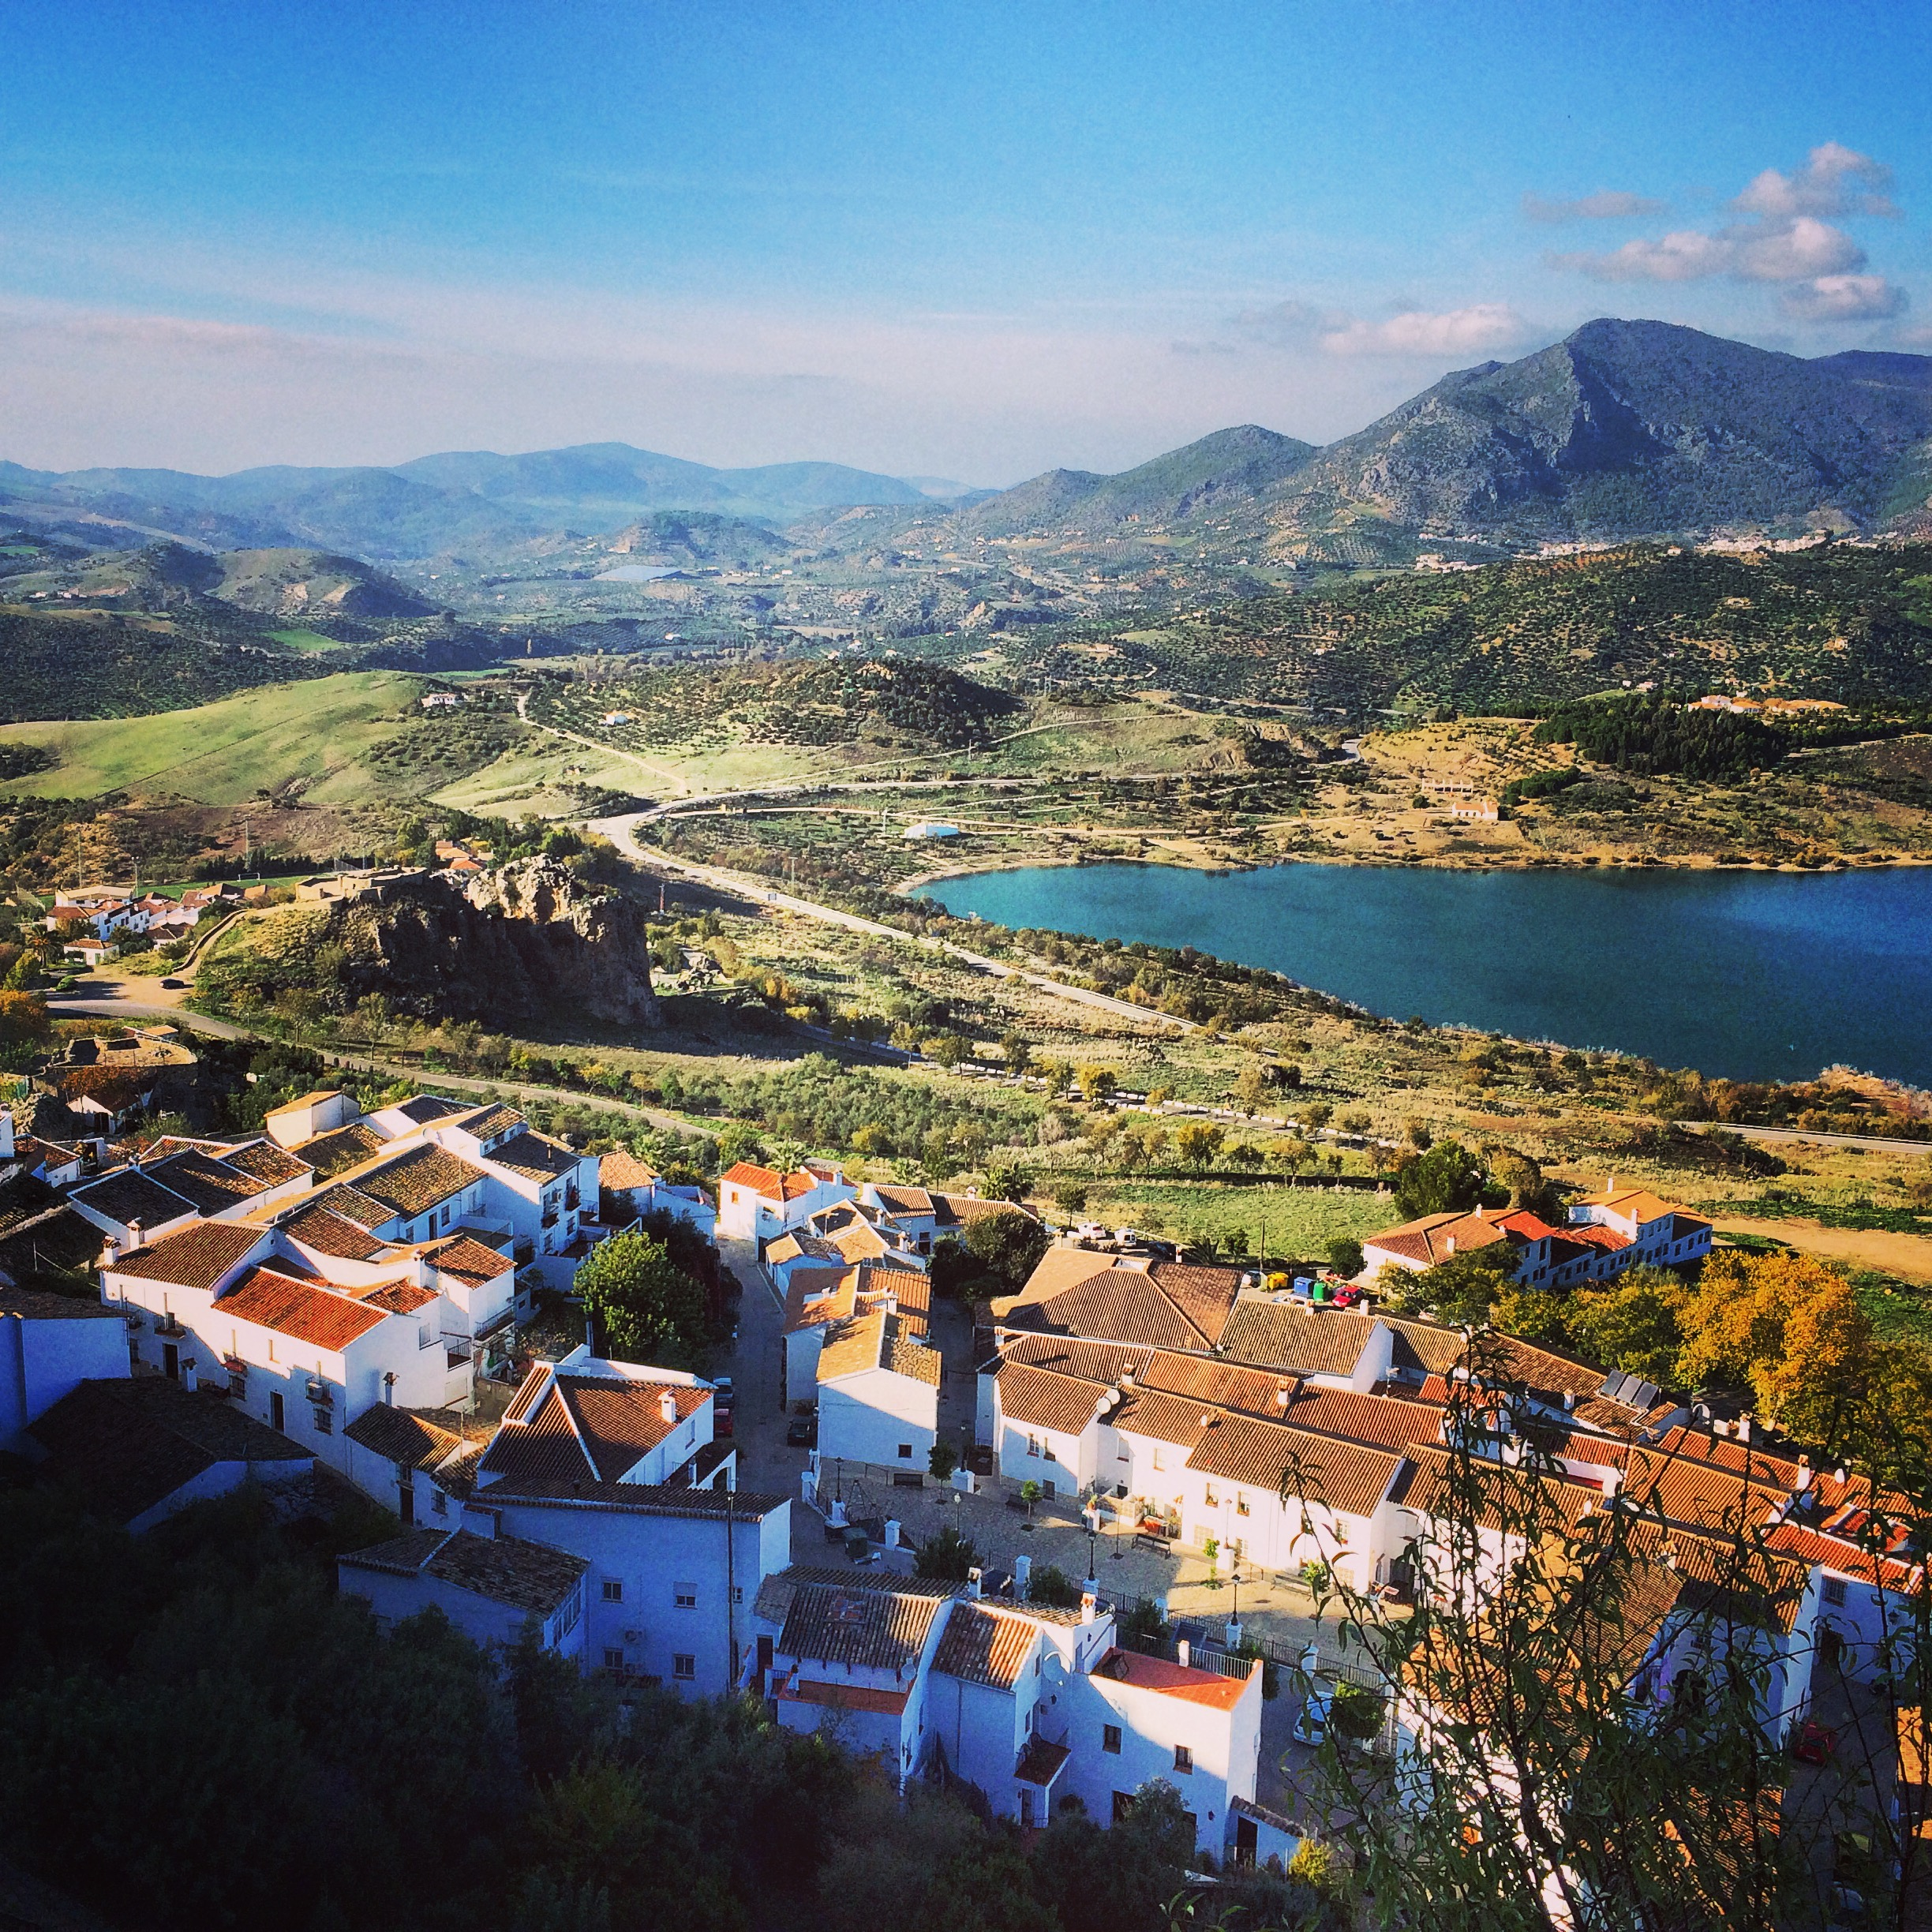 Riding through the famed Andalusian range and only stopping to admire the scenery and wonderful food makes for a great adventure.